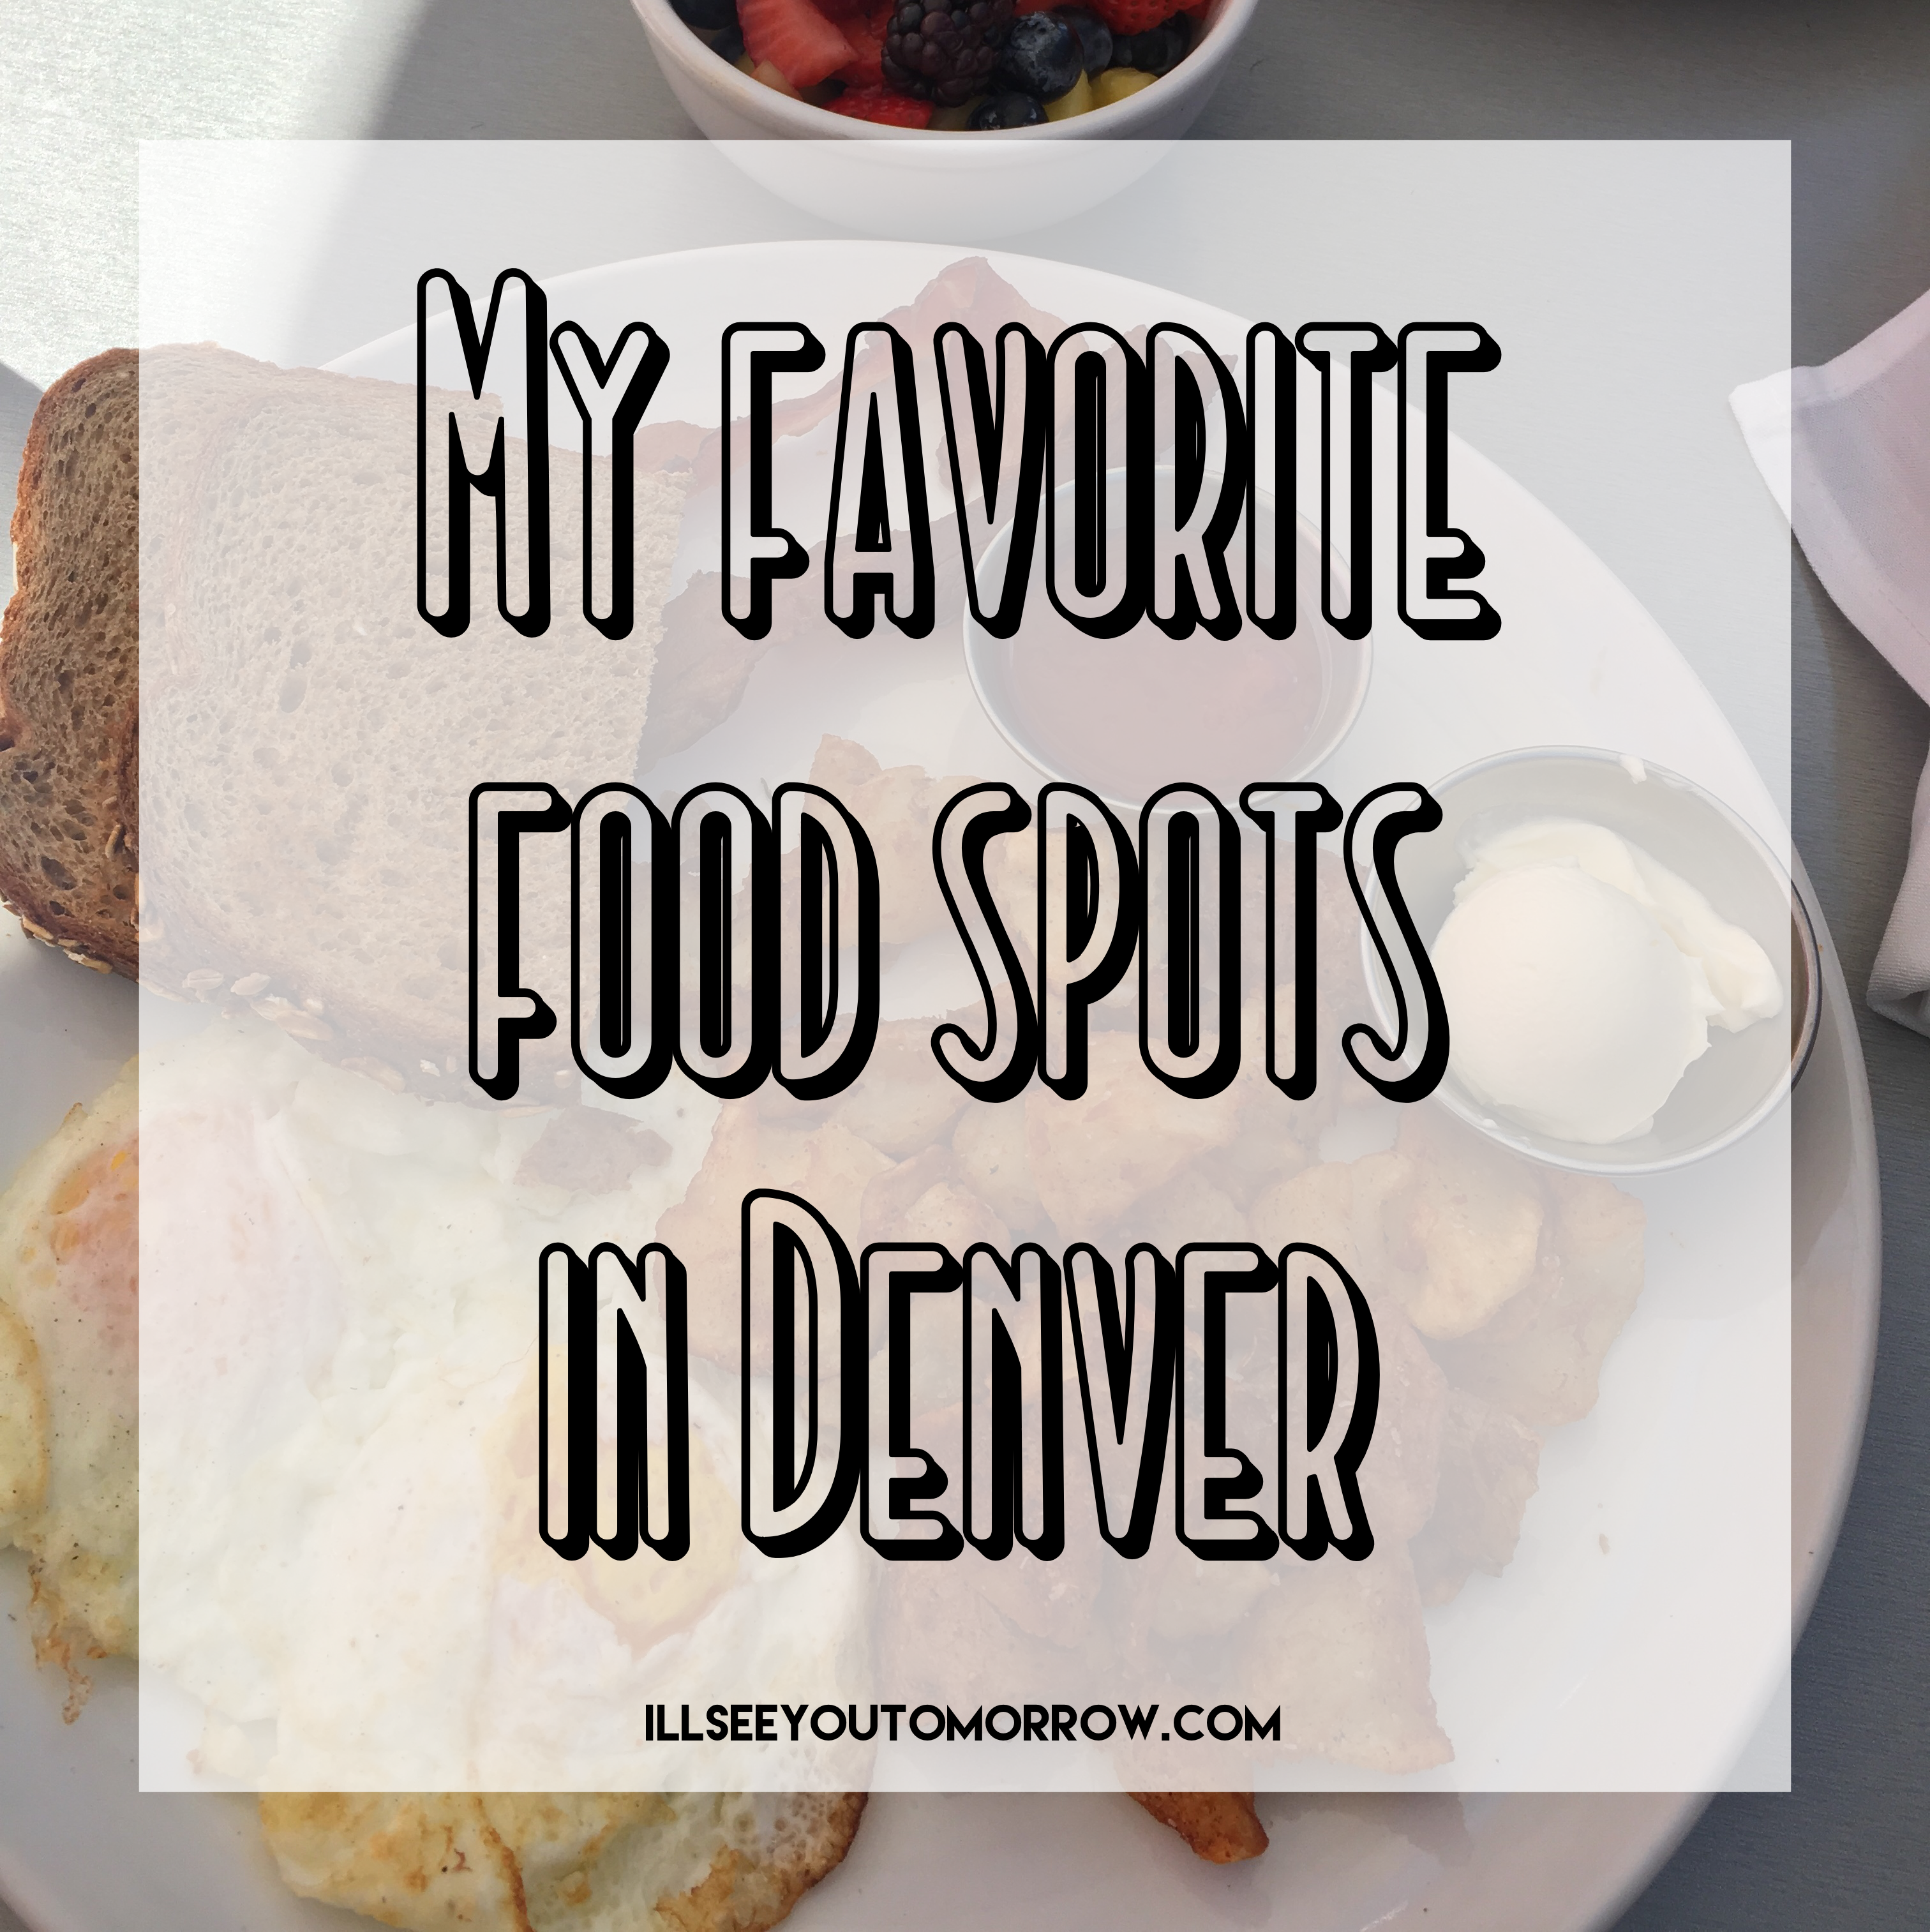 My Favorite Food Spots in Denver